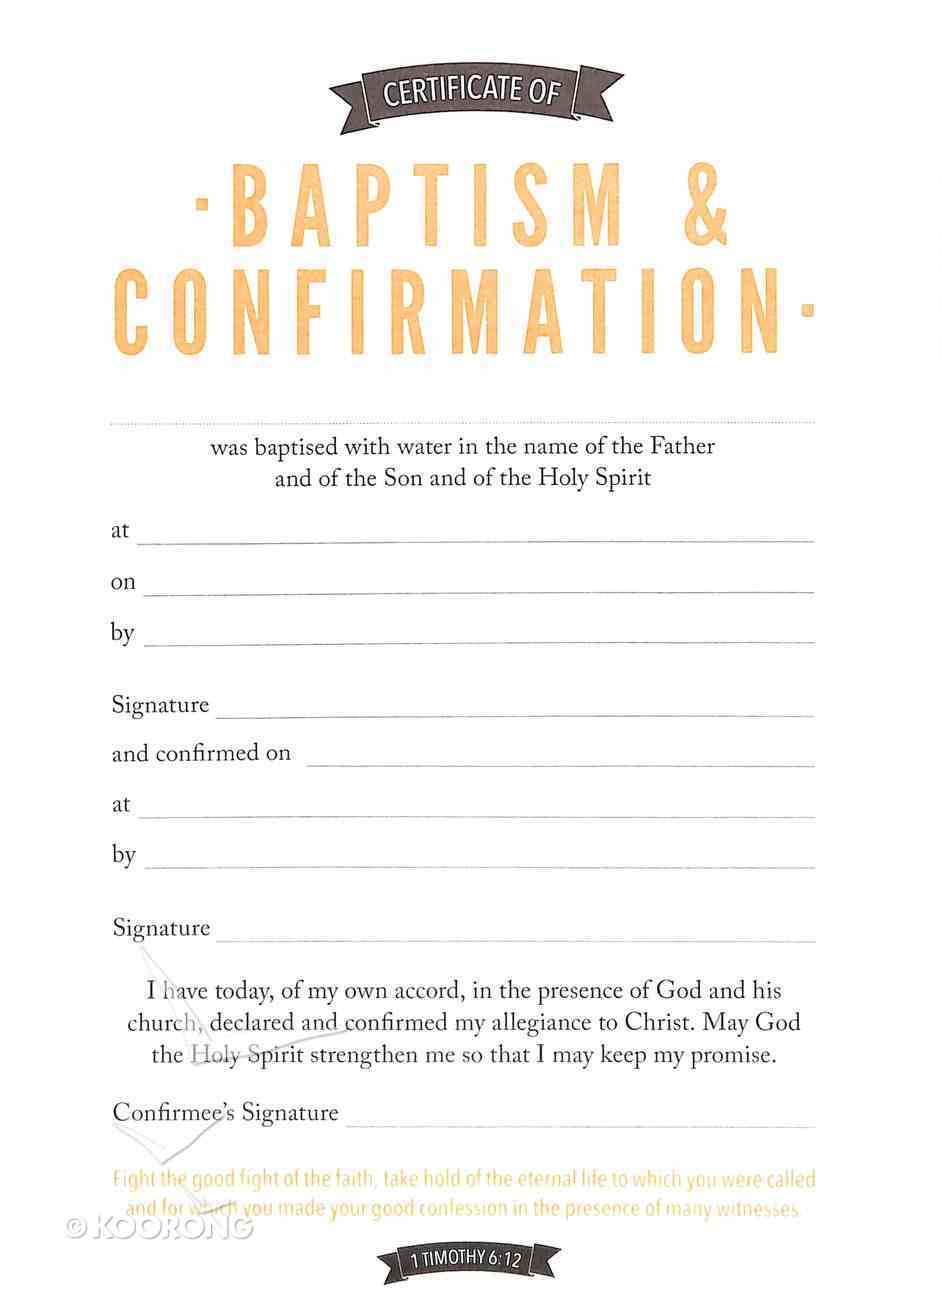 Certificate of Baptism & Confirmation (1 Timothy 6: 12) Stationery